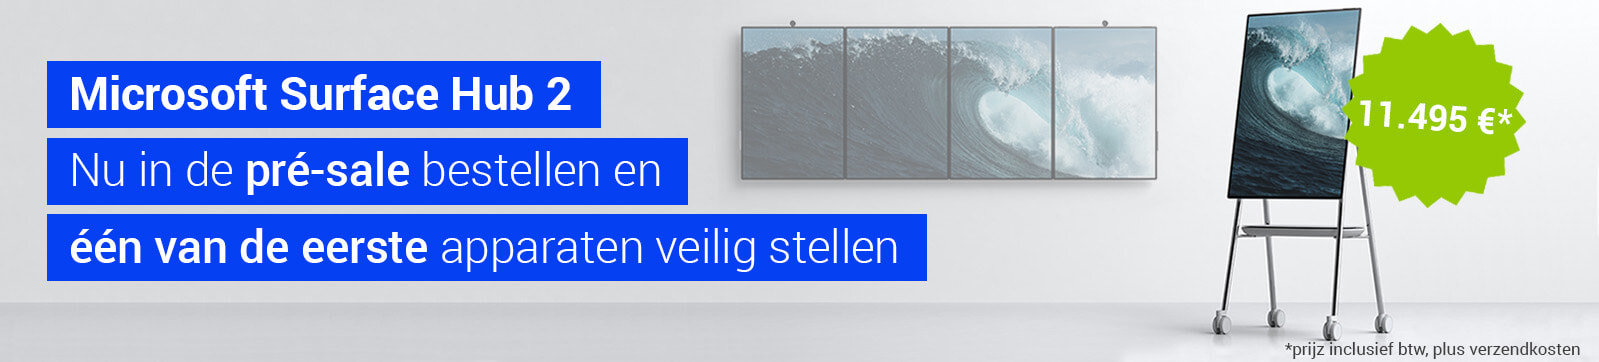 Microsoft Surface Hub2 - Nu in de pré-sale bestellen